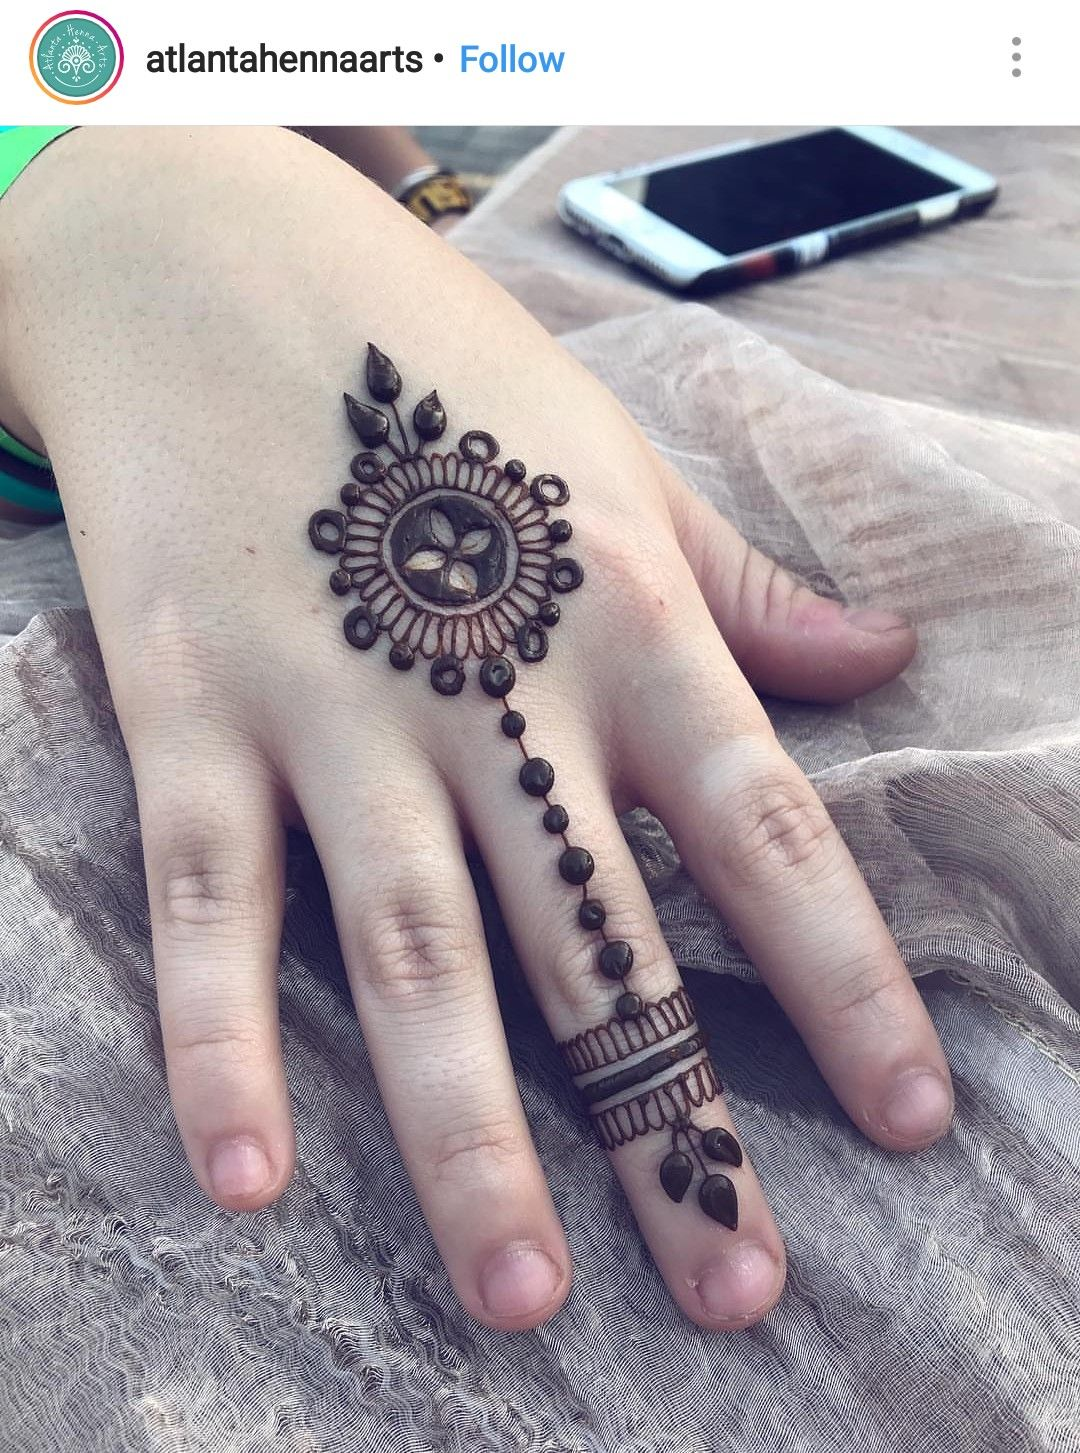 Henna Mehndi Tattoo Designs Idea For Wrist: Henna Hand And Wrist Idea (With Images)